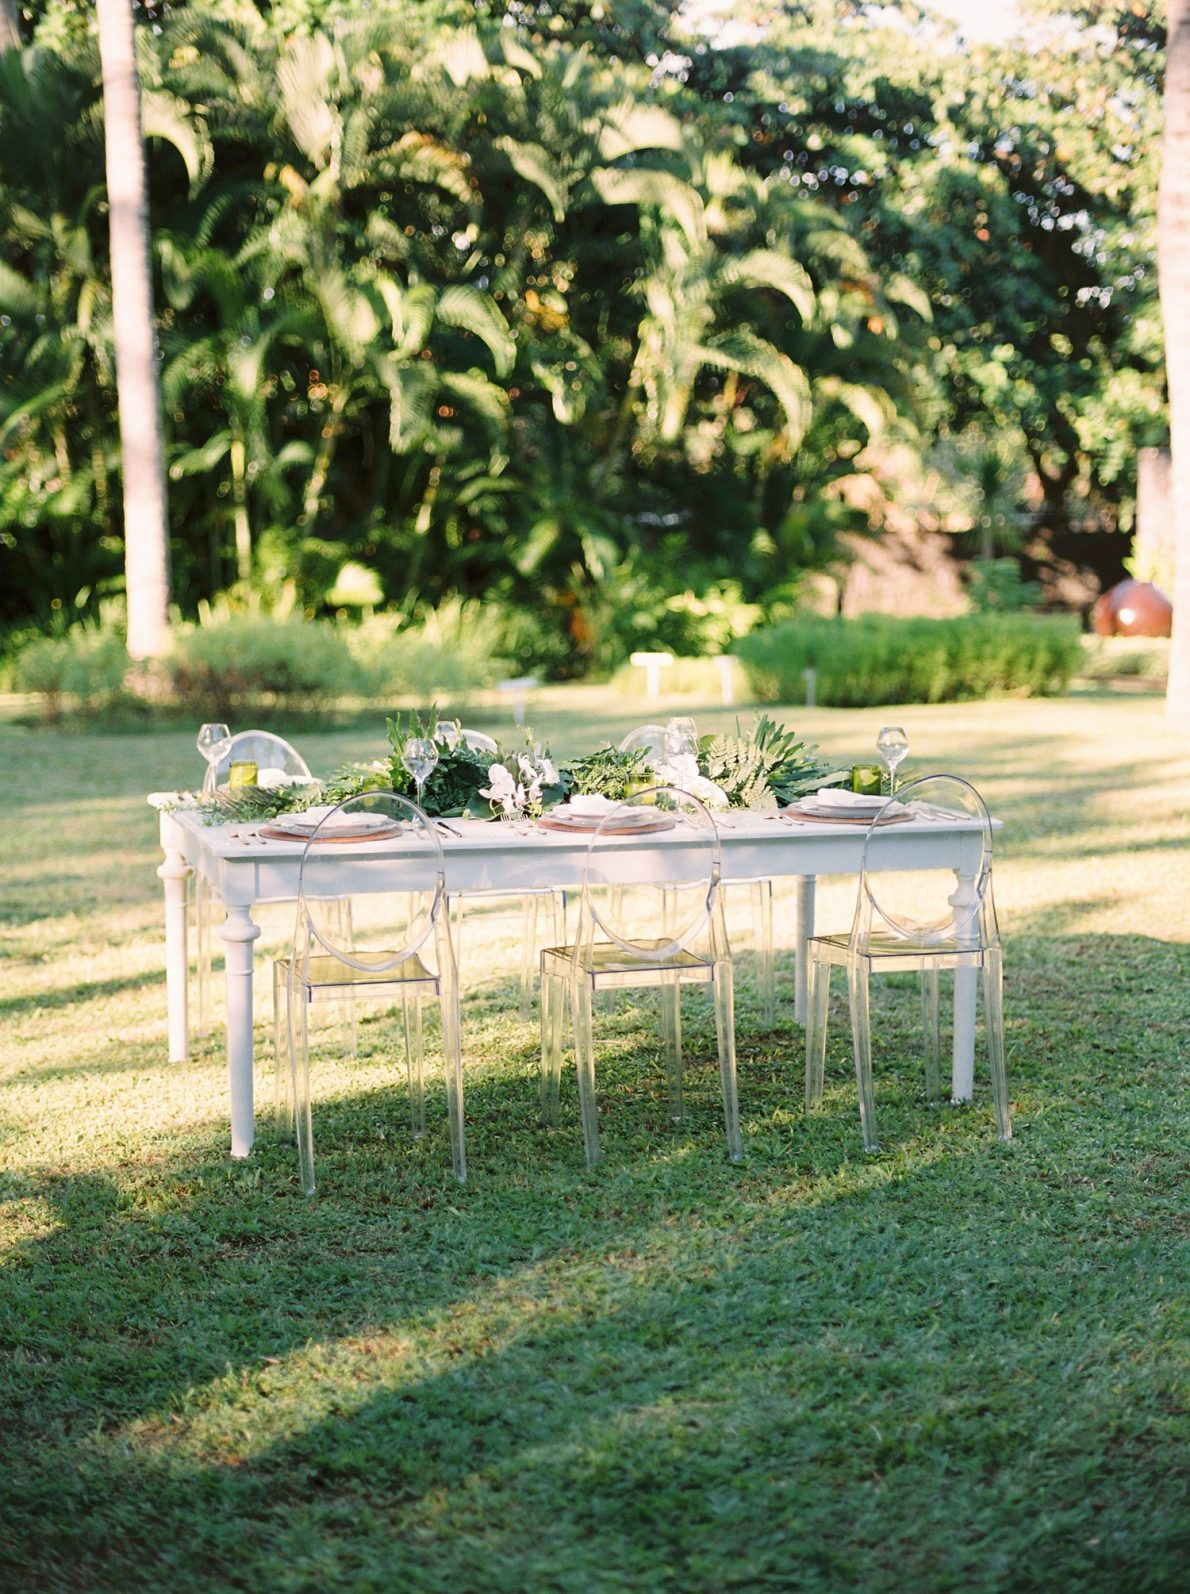 Outdoor Wedding Reception in Ubud Bali Wedding Photos at Cuca Restaurant Jimbaran